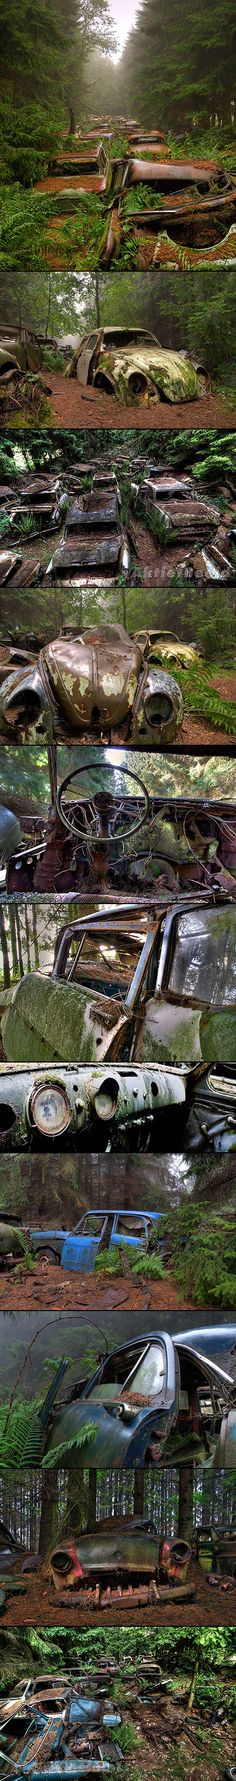 """These spooky apocalyptic images are not a scene from """"Walking Dead"""", they were actually taken at one of the biggest car cemeteries in the world – the Chatillion Car Graveyard, Belgium."""